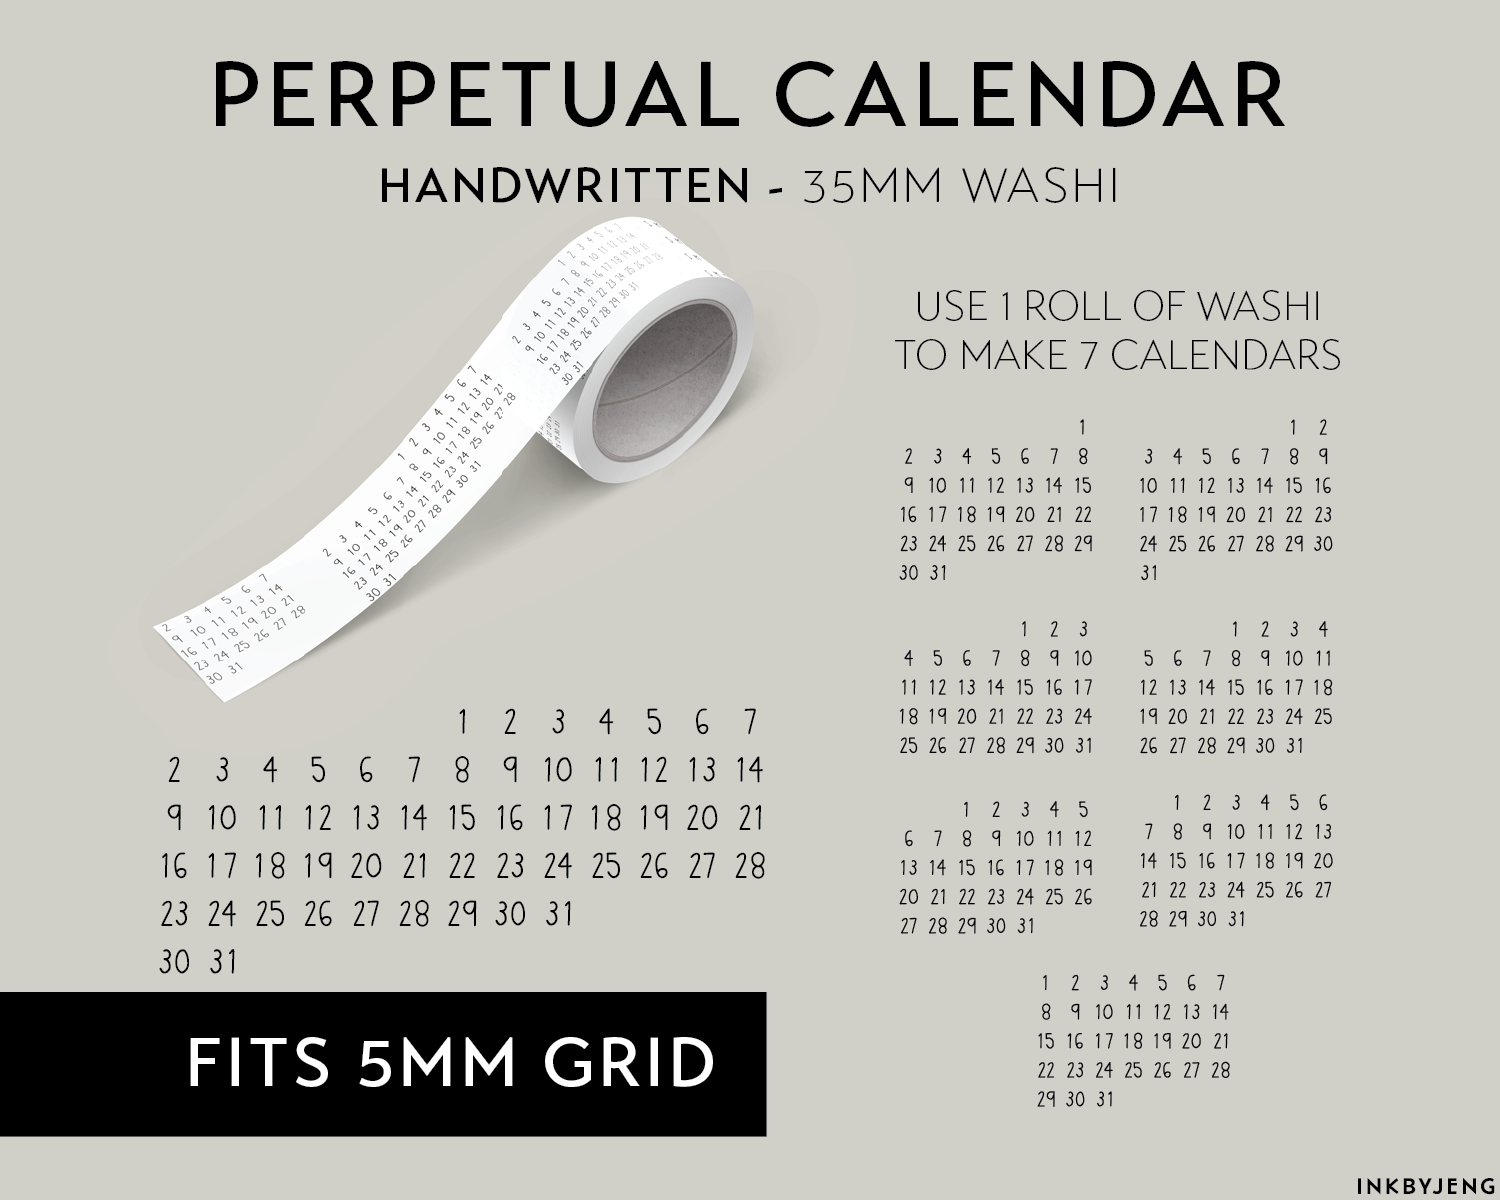 Washi Tape 35mm - Perpetual Calendar - Handwritten (W35 | 099)